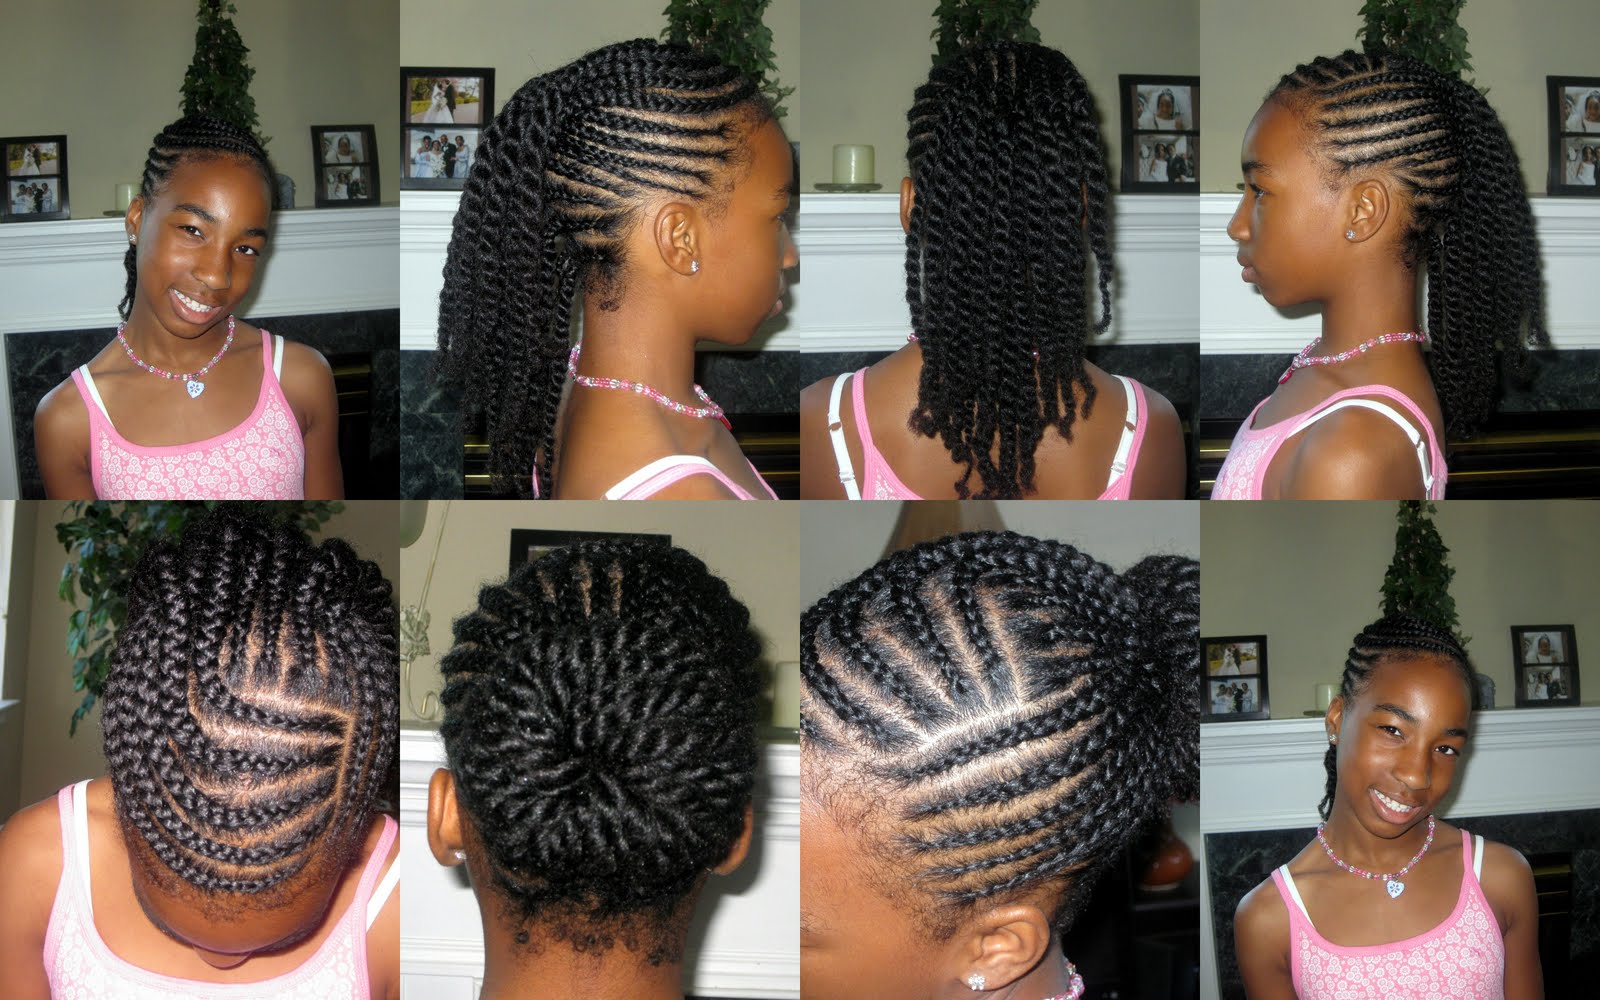 Easy Braided Hairstyles For Little Black Girls Wednesday, May 19, 2010